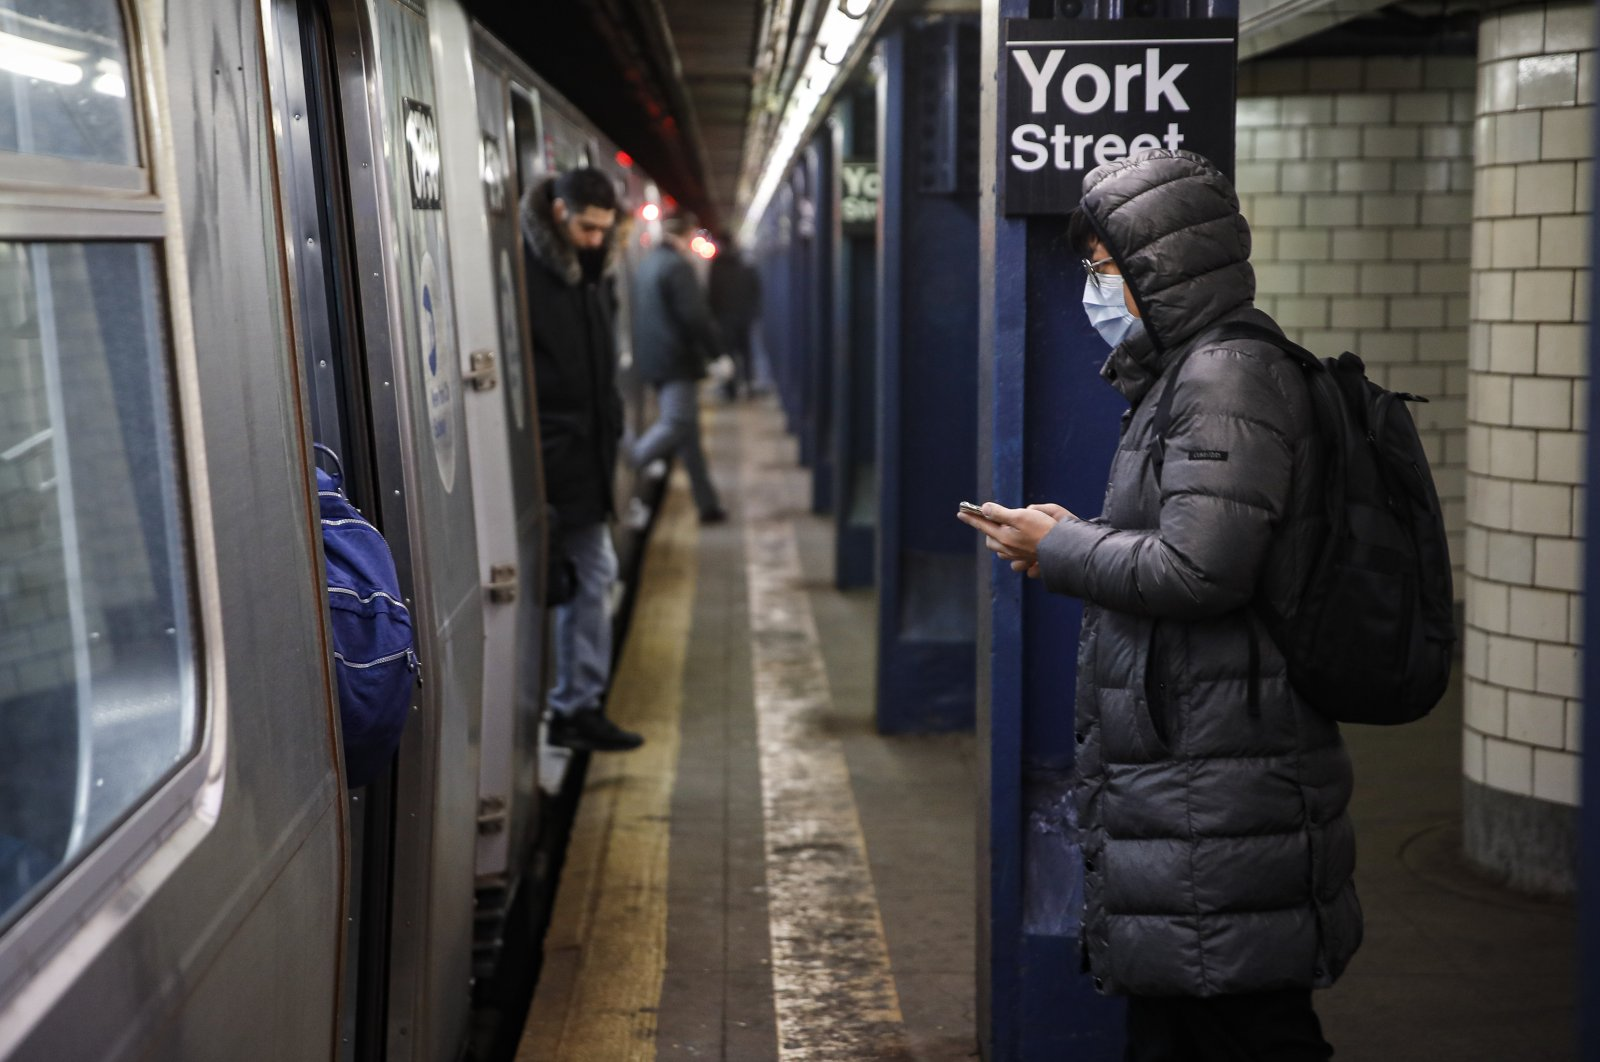 A subway user wearing a face mask waits to board a car in the Brooklyn borough of New York, Monday, March 16, 2020. (AP Photo)